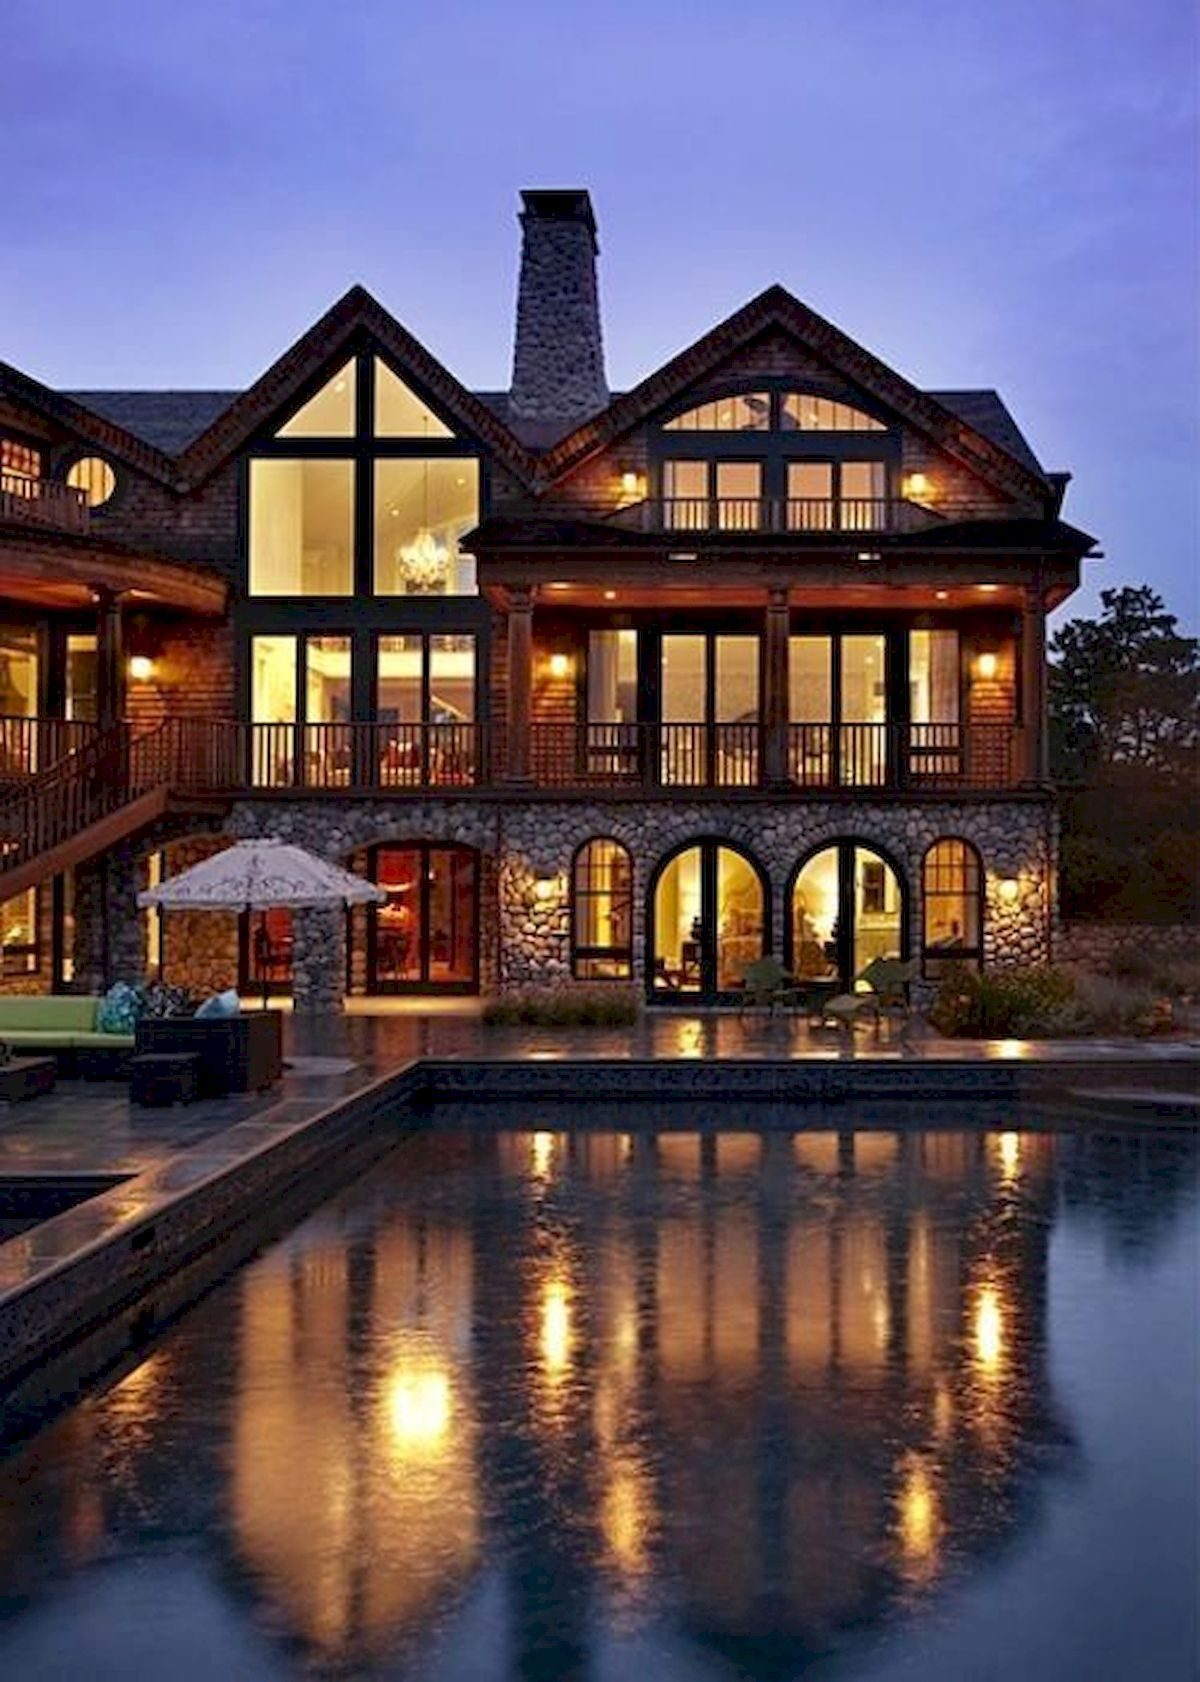 Awesome 50 Incredible Log Cabin Homes Modern Design Ideas ht